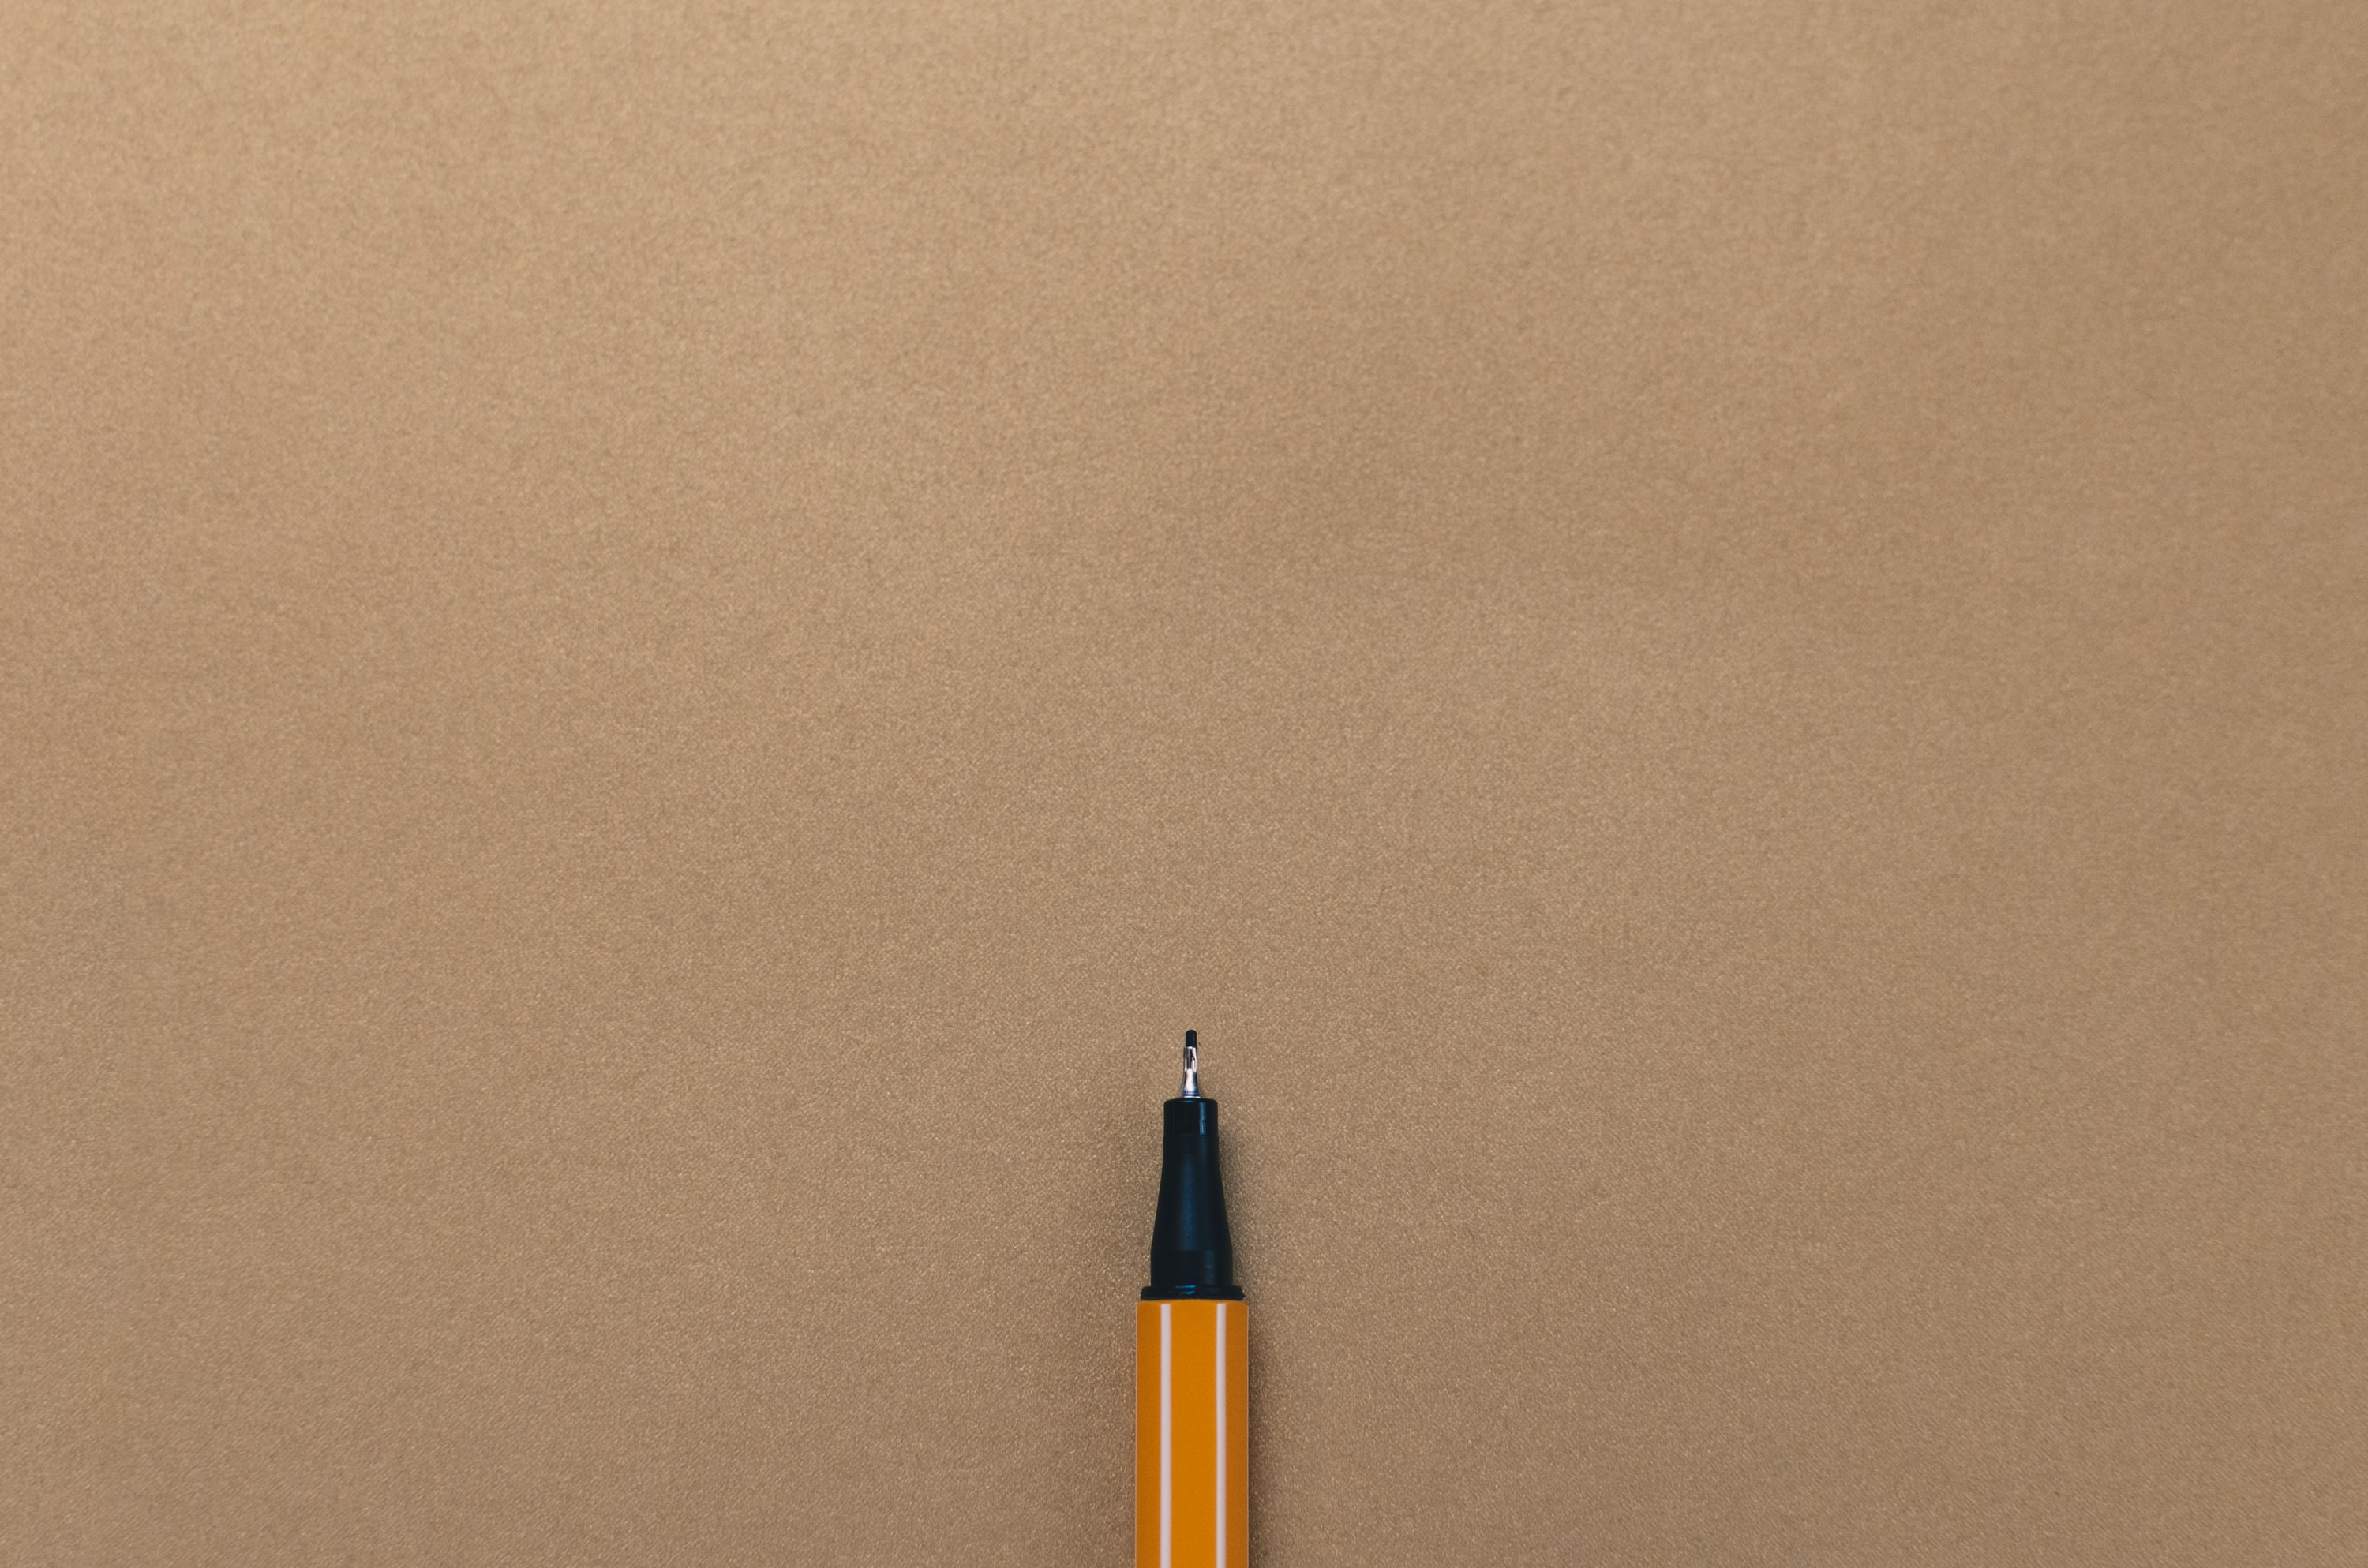 pen on brown board